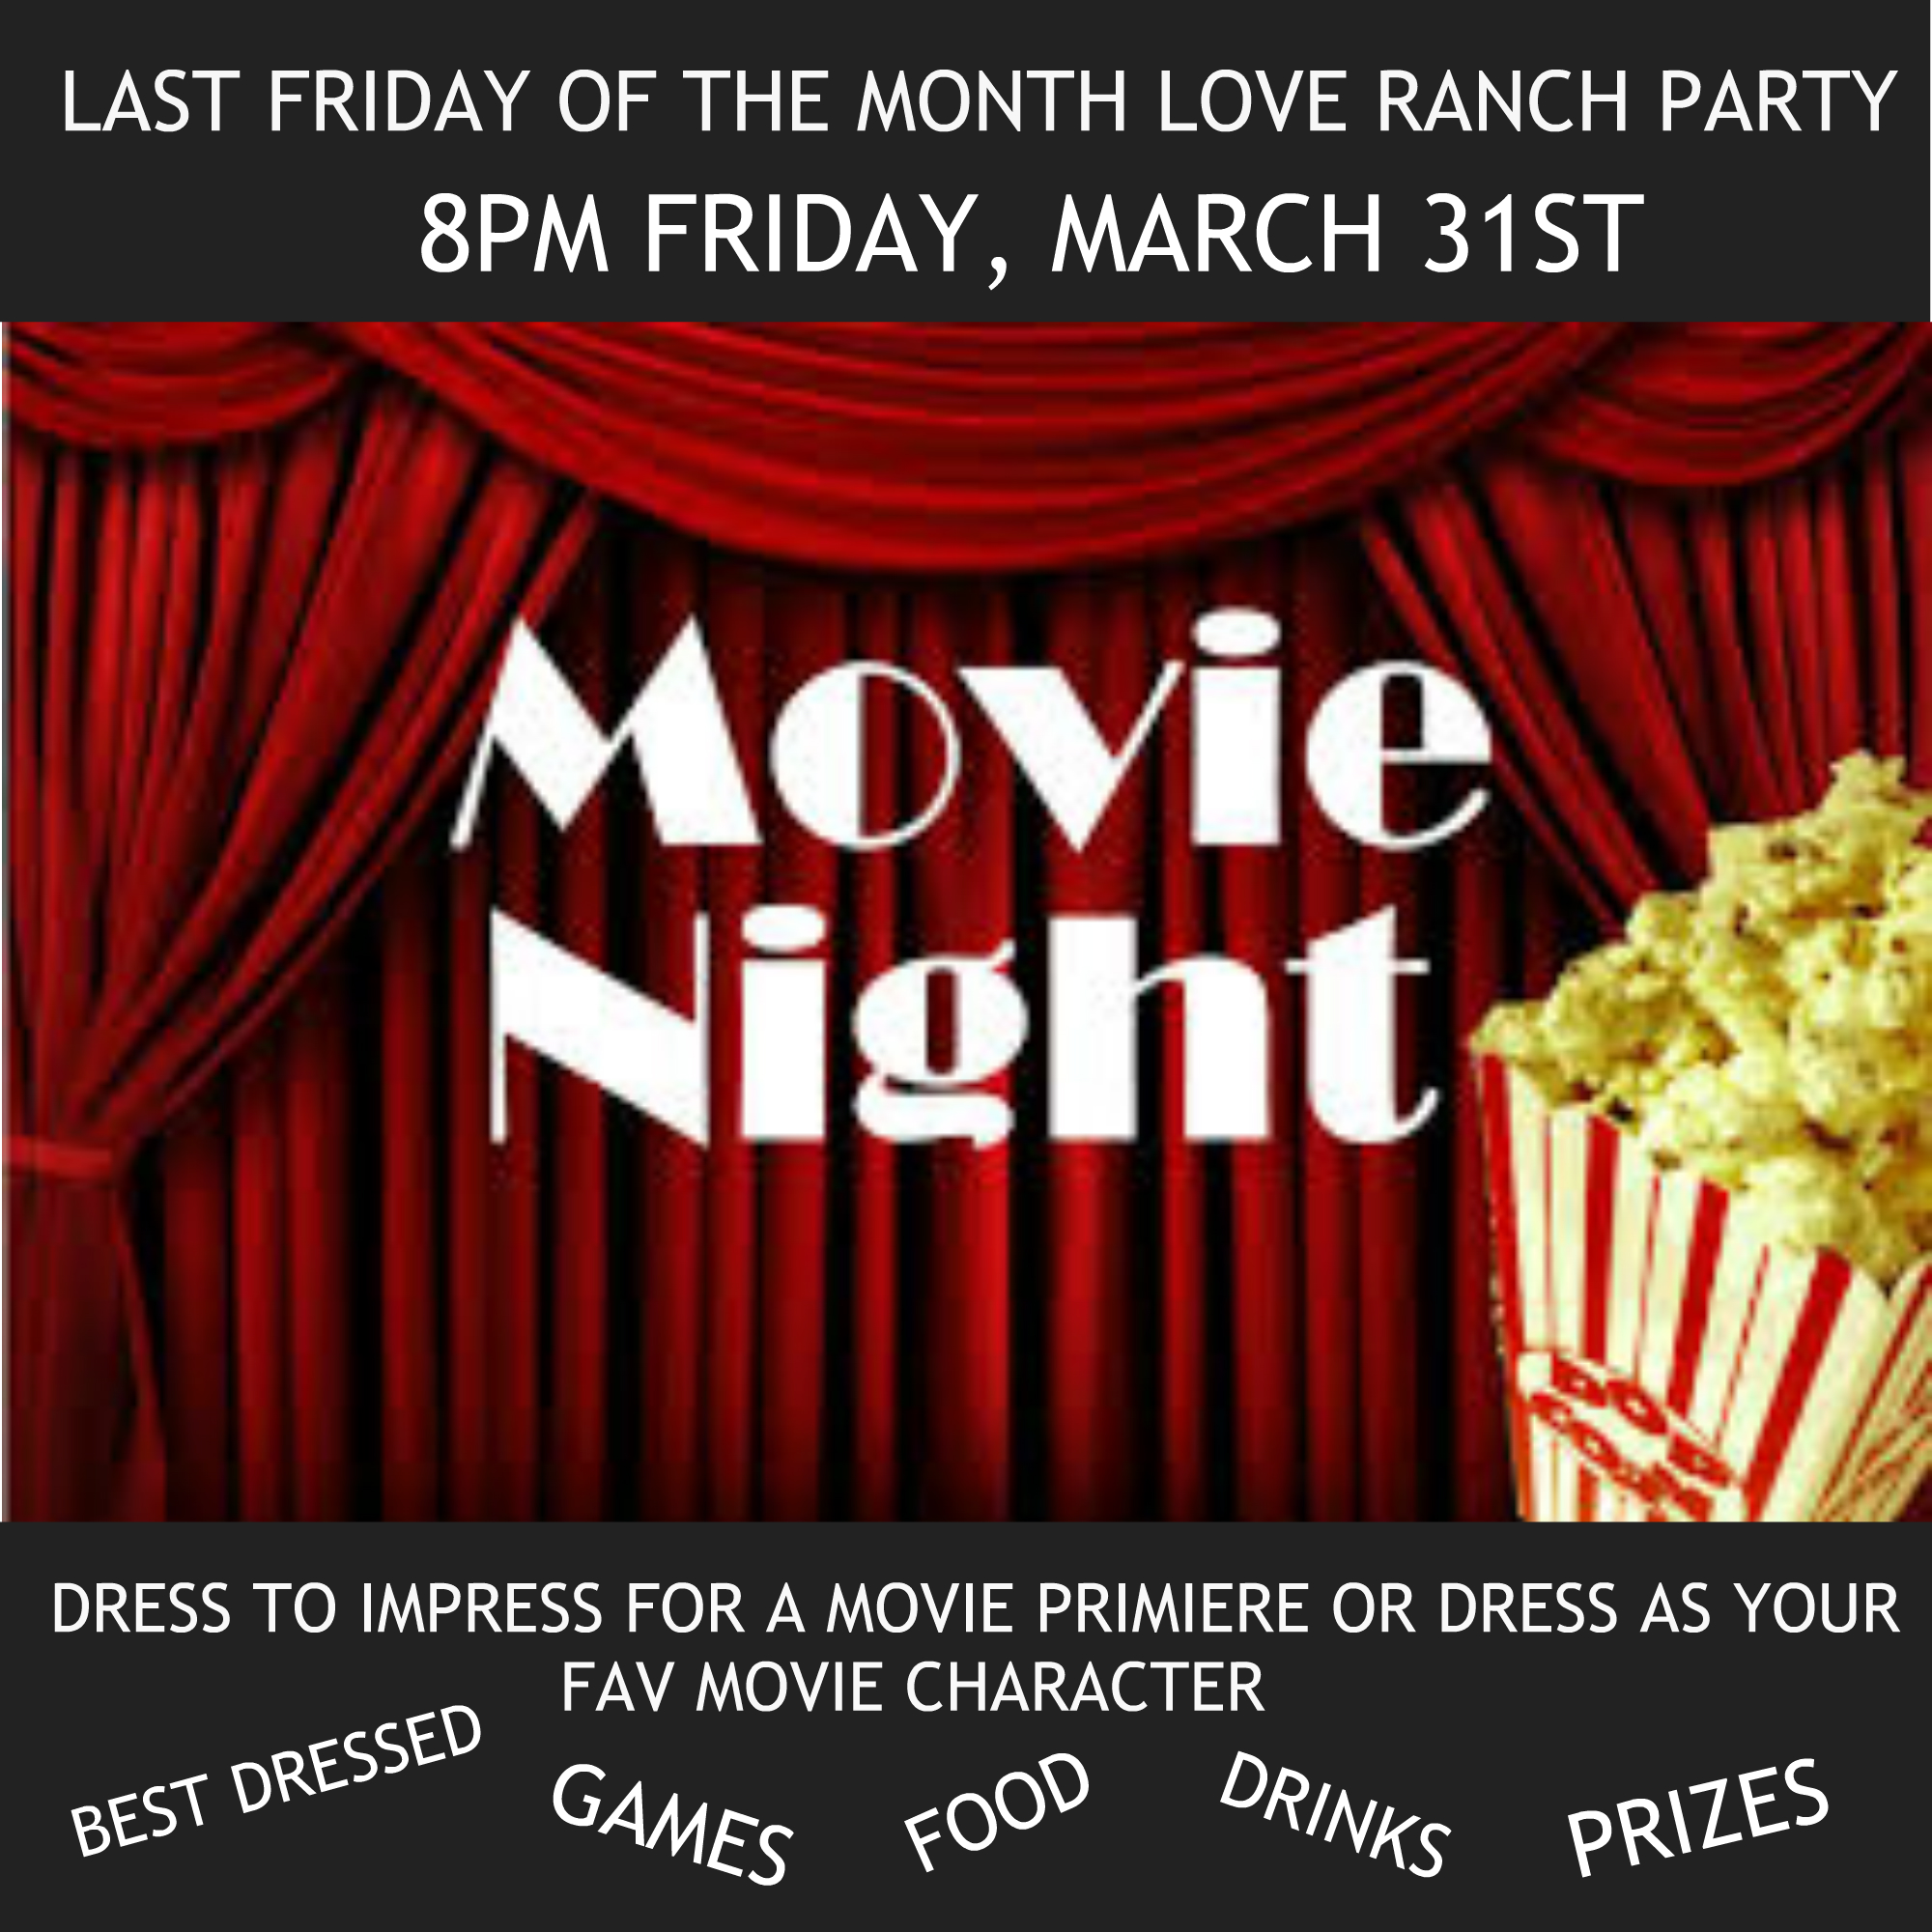 MARCH END OF THE MONTH PARTY THEME FOR LRN